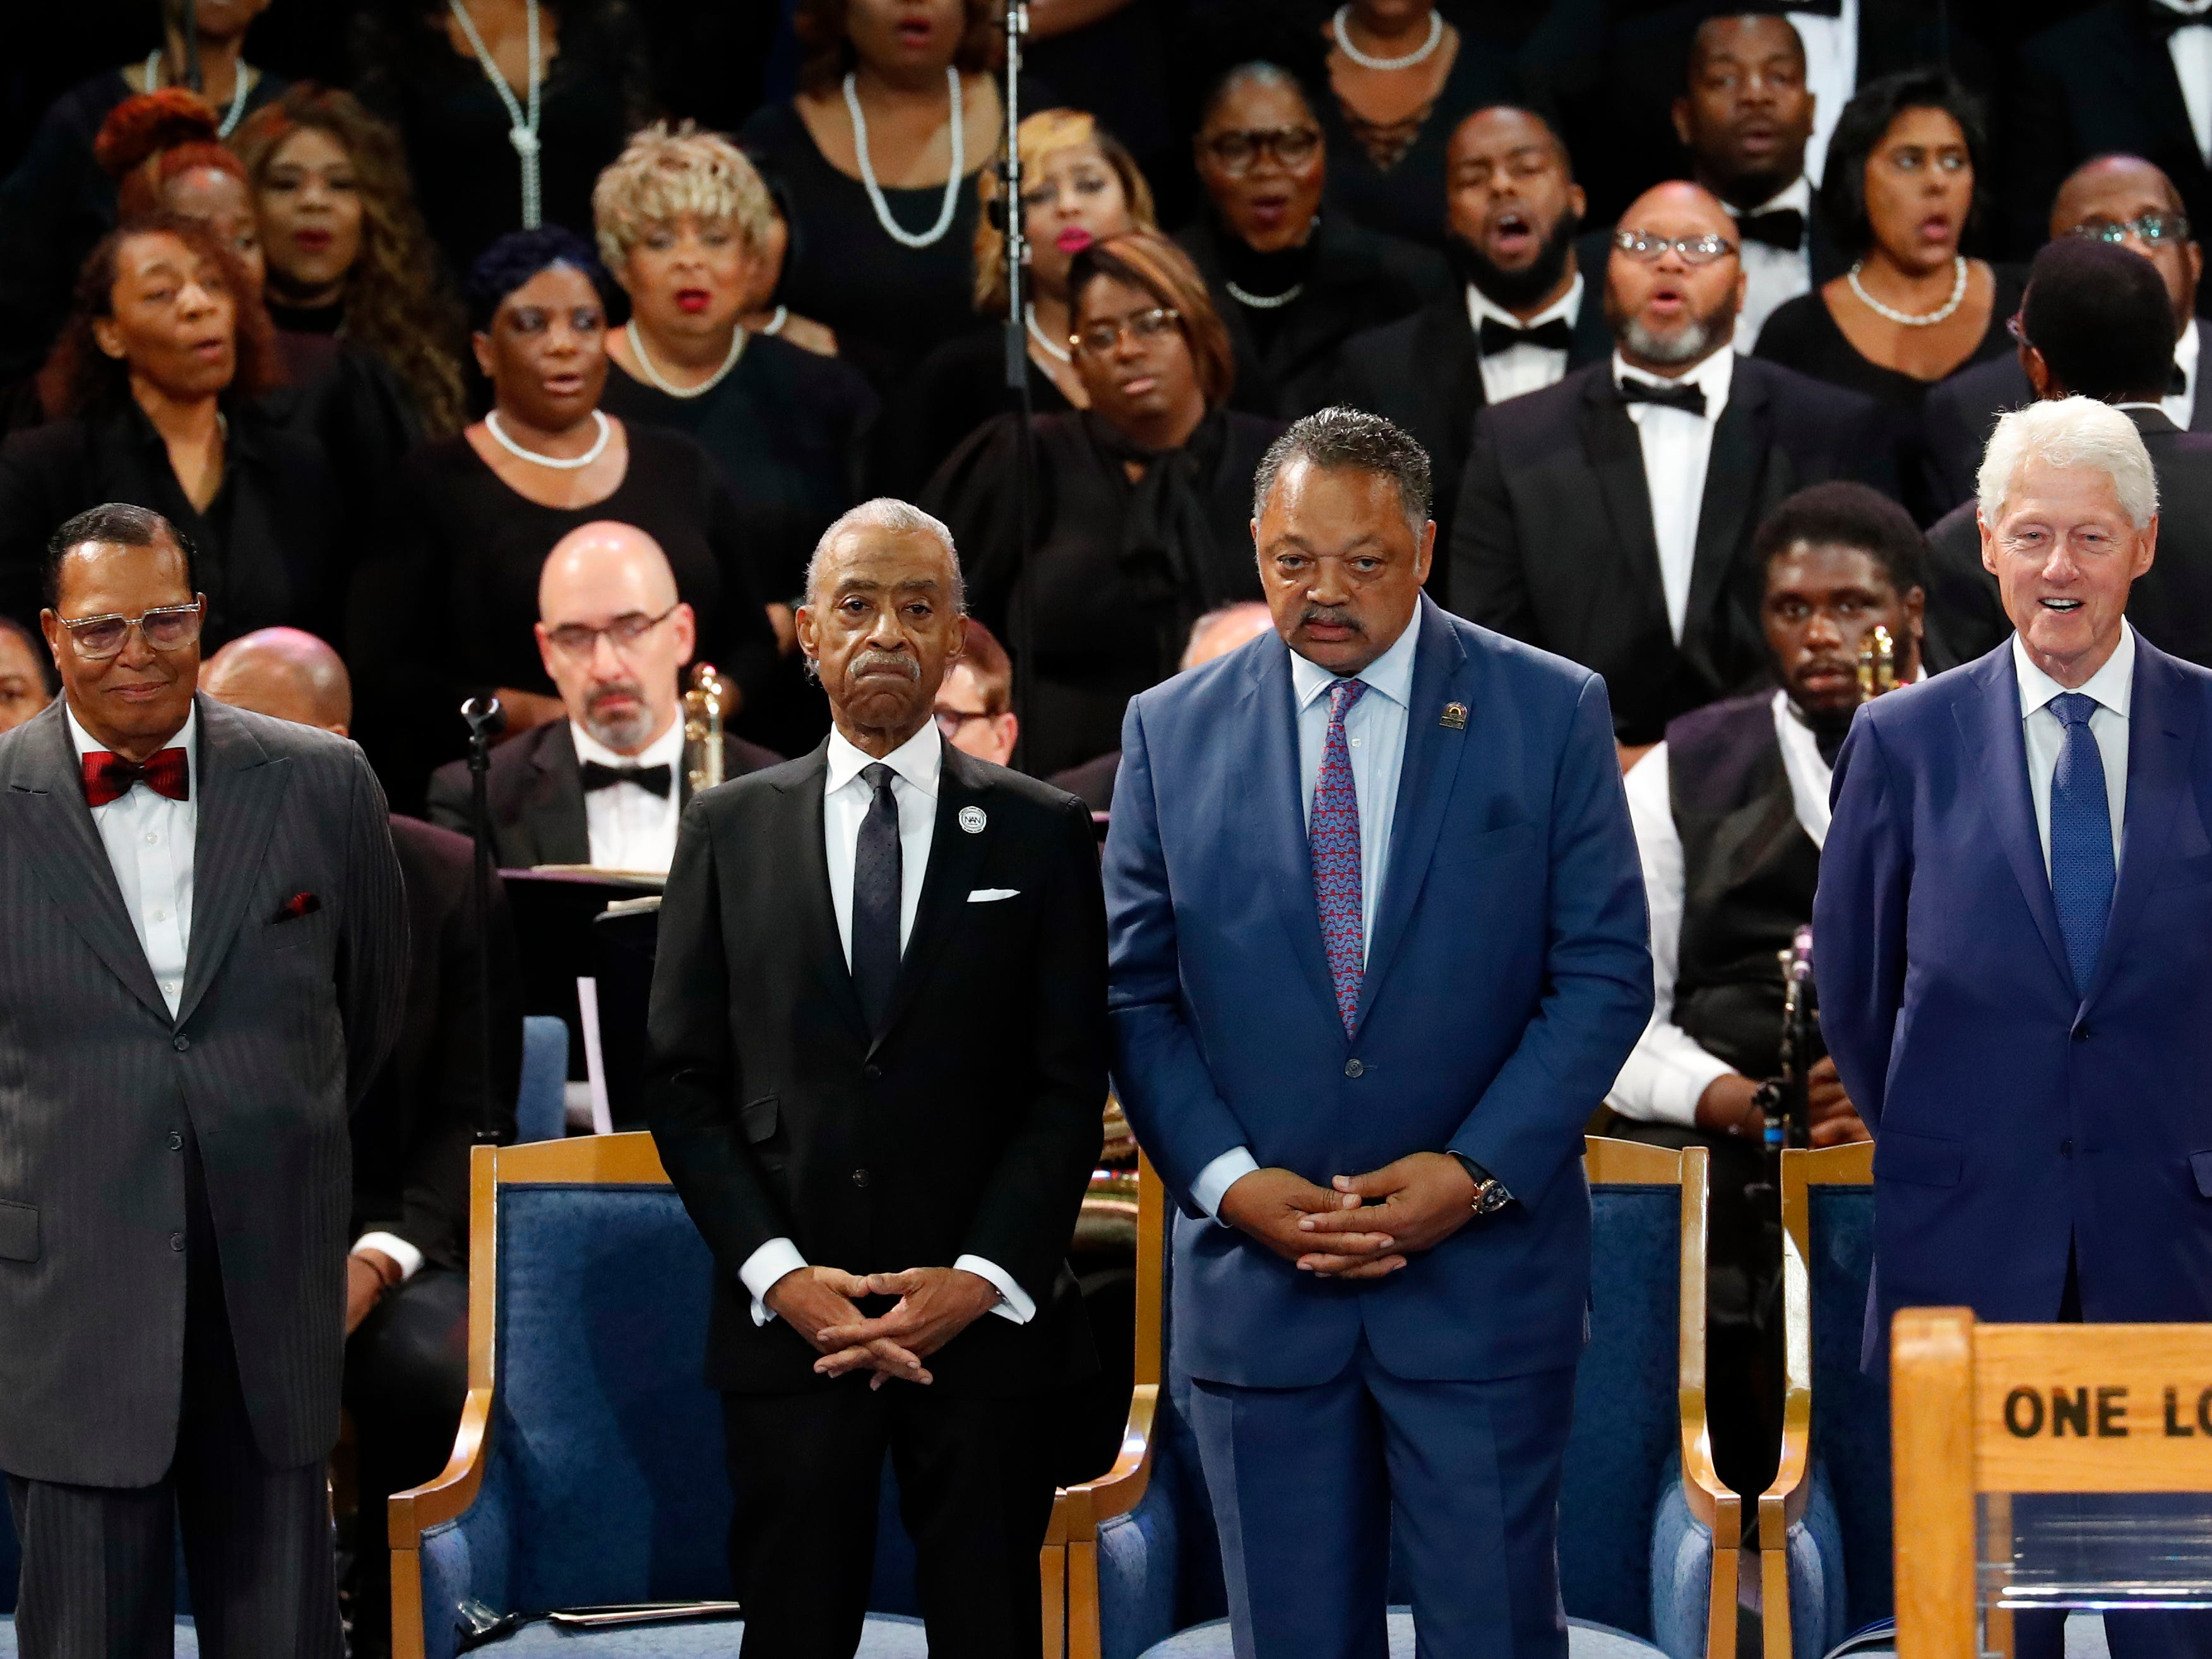 From left, Nation of Islam leader Louis Farrakhan, Rev. Al Sharpton, Rev. Jesse Jackson and former President Bill Clinton attend the funeral service for Aretha Franklin.